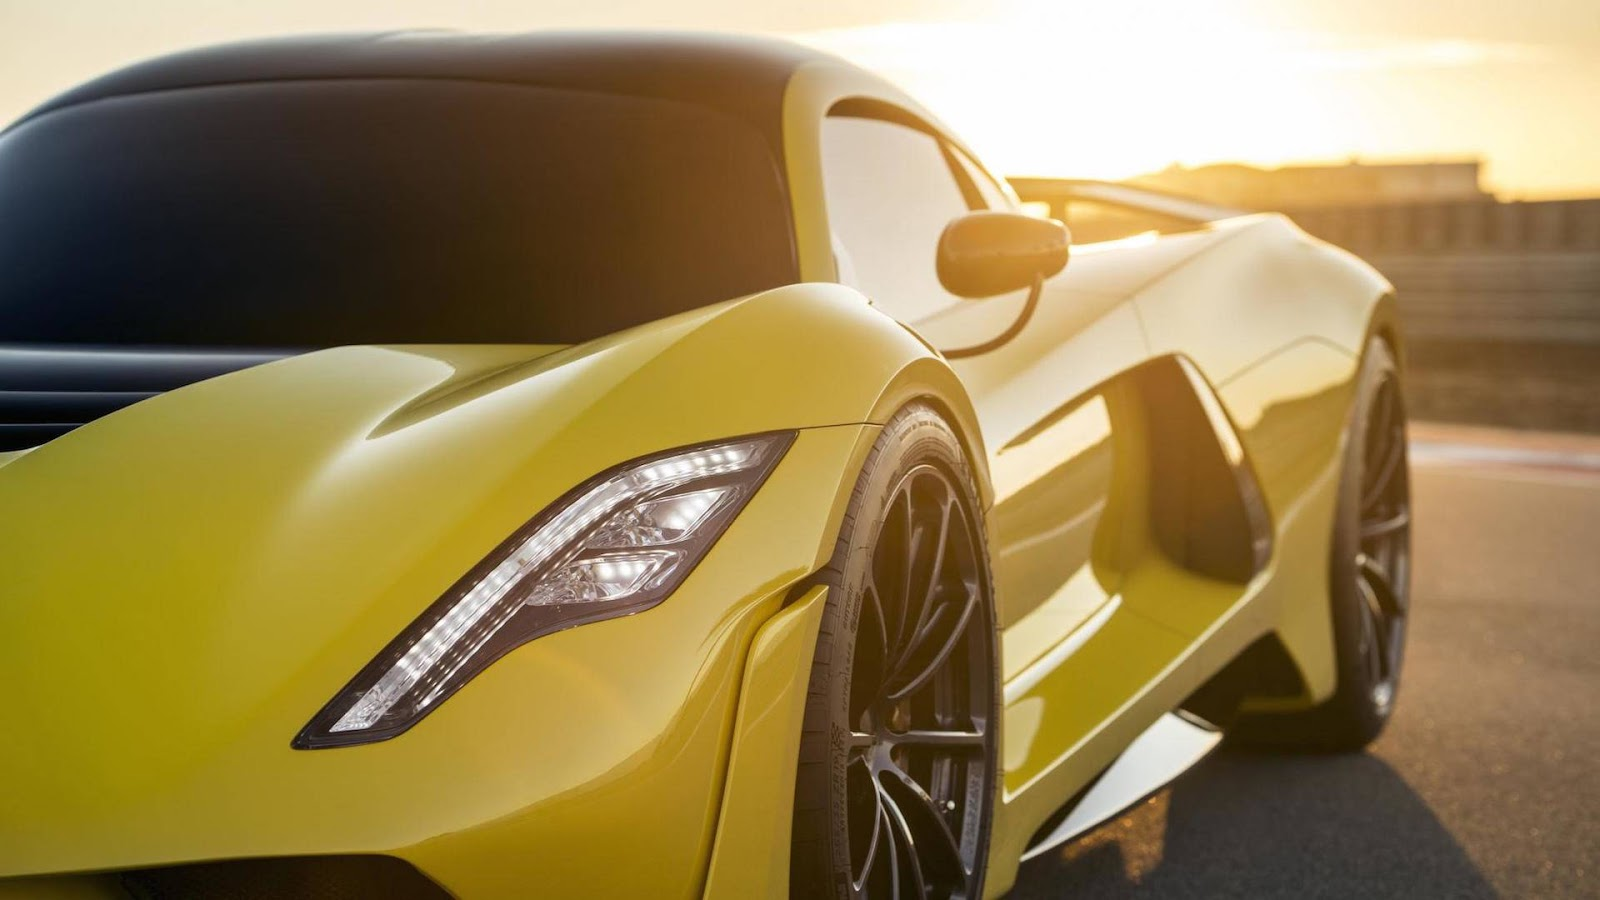 Hennessey Venom F5 twin turbo V8, Power 1817HP